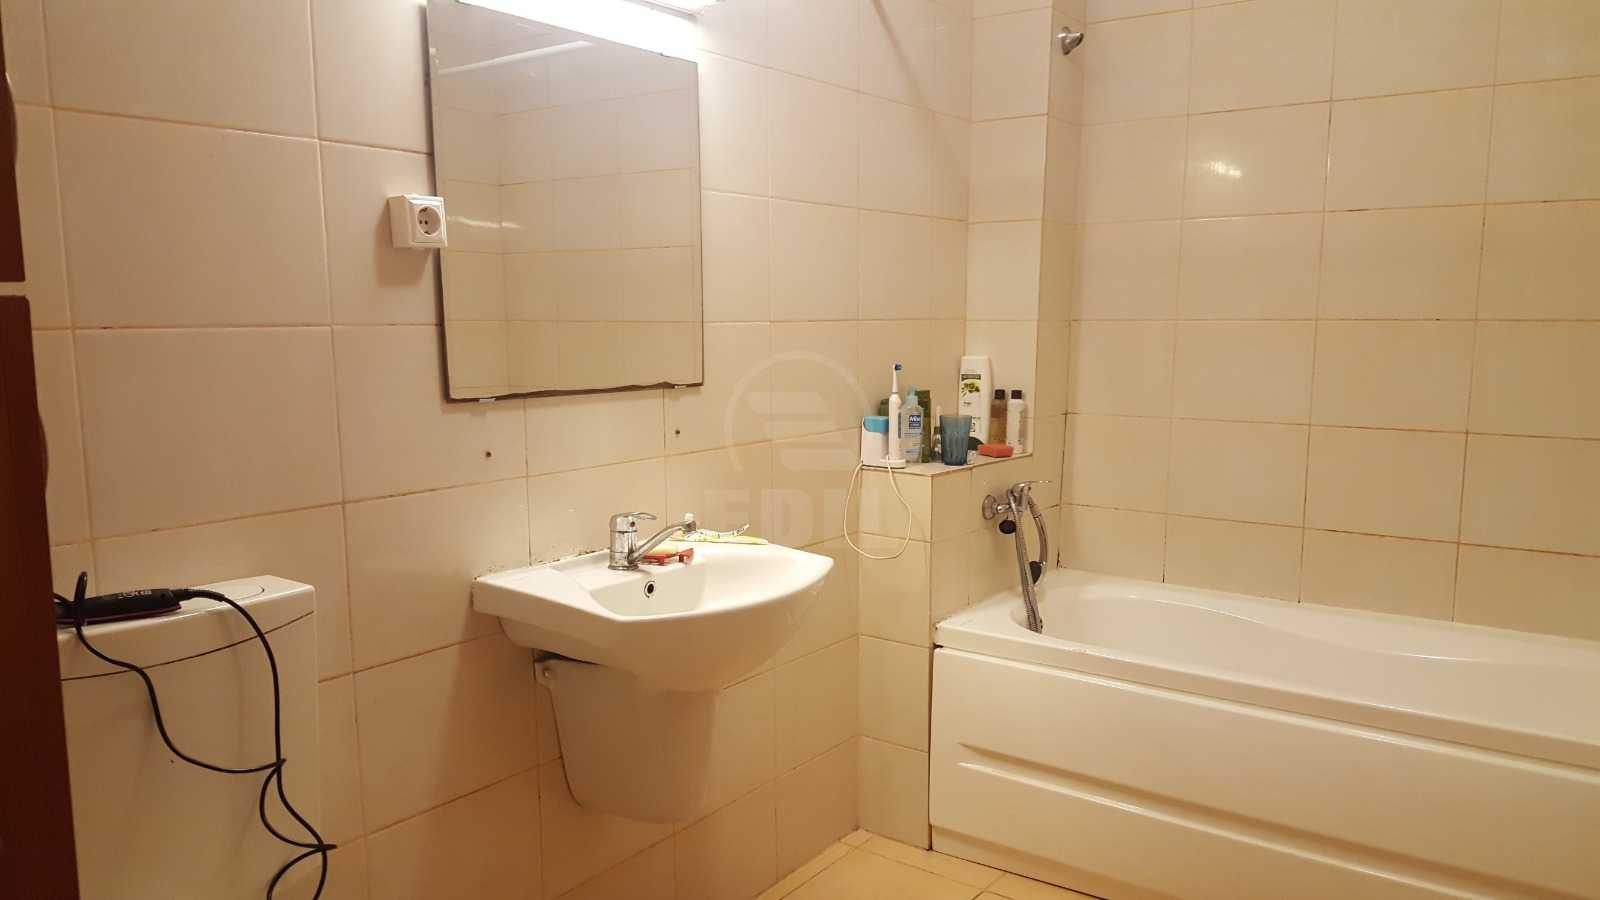 Apartment for rent 2 rooms, APCJ306976-4